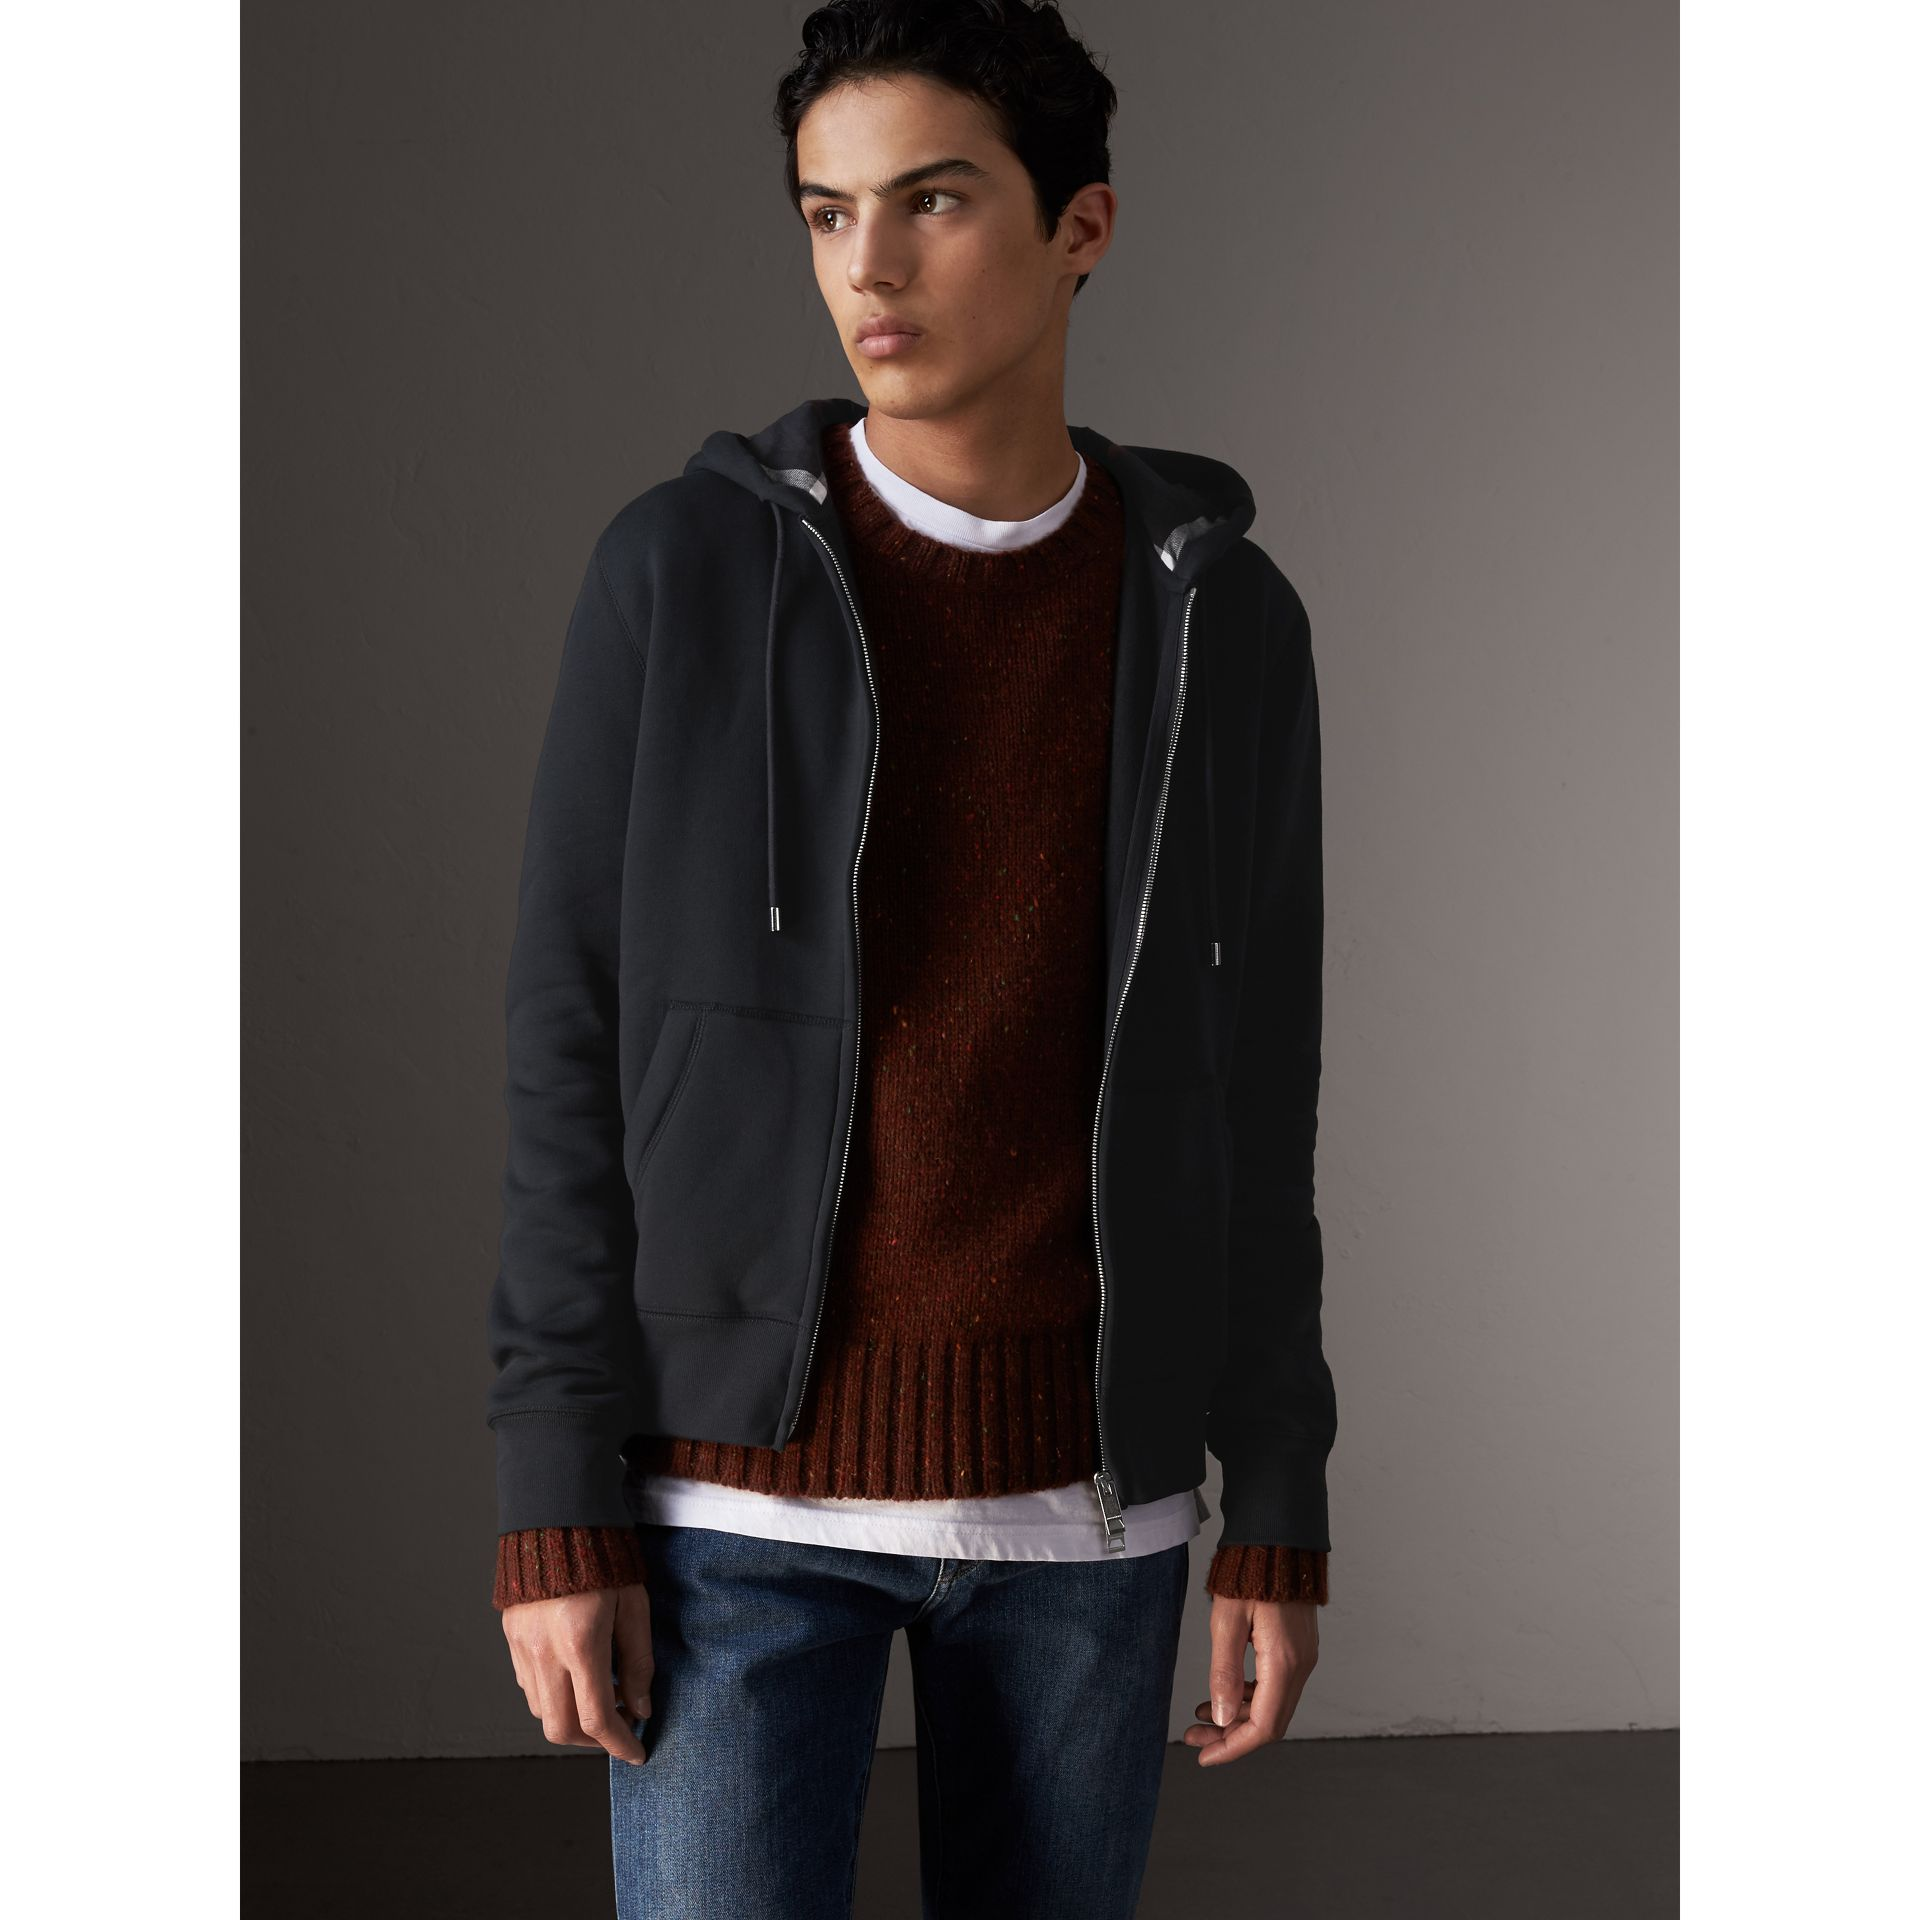 Burberry Navy Hooded Cotton Jersey Top